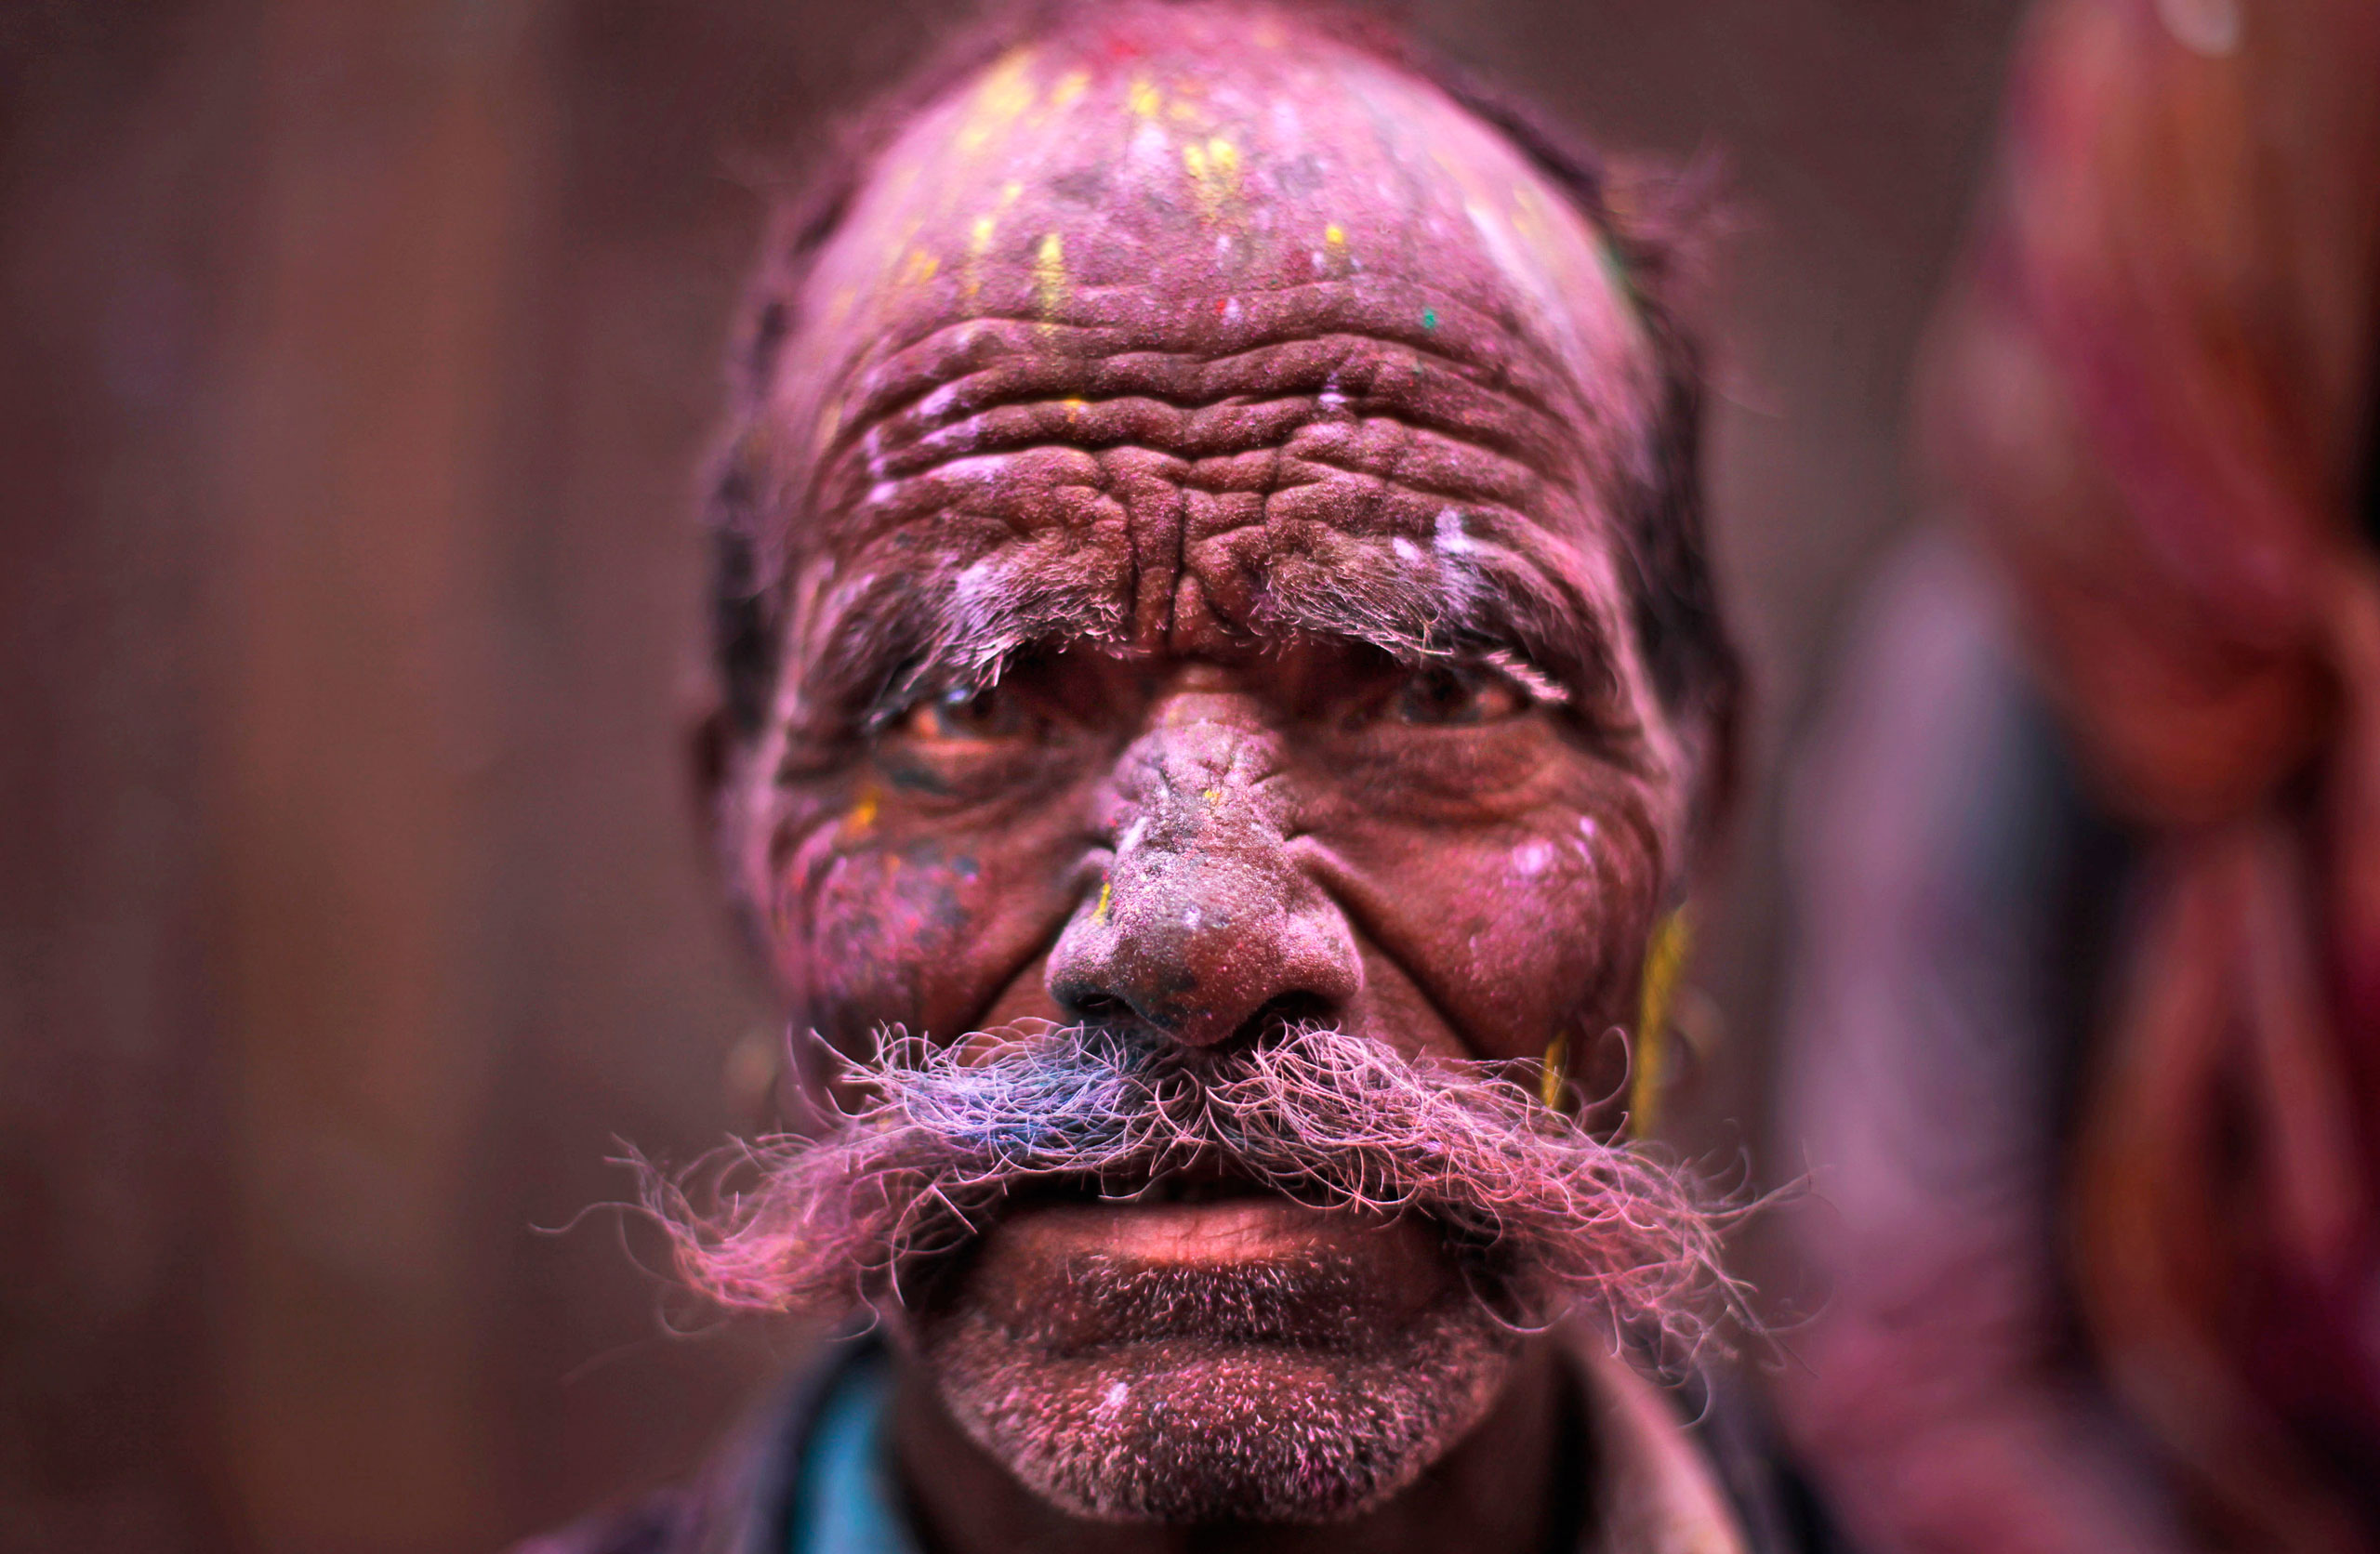 A Hindu devotee, face smeared with colored powder, leaves the Banke Bihari temple during Holi celebrations in Vrindavan, on, March 27, 2013.